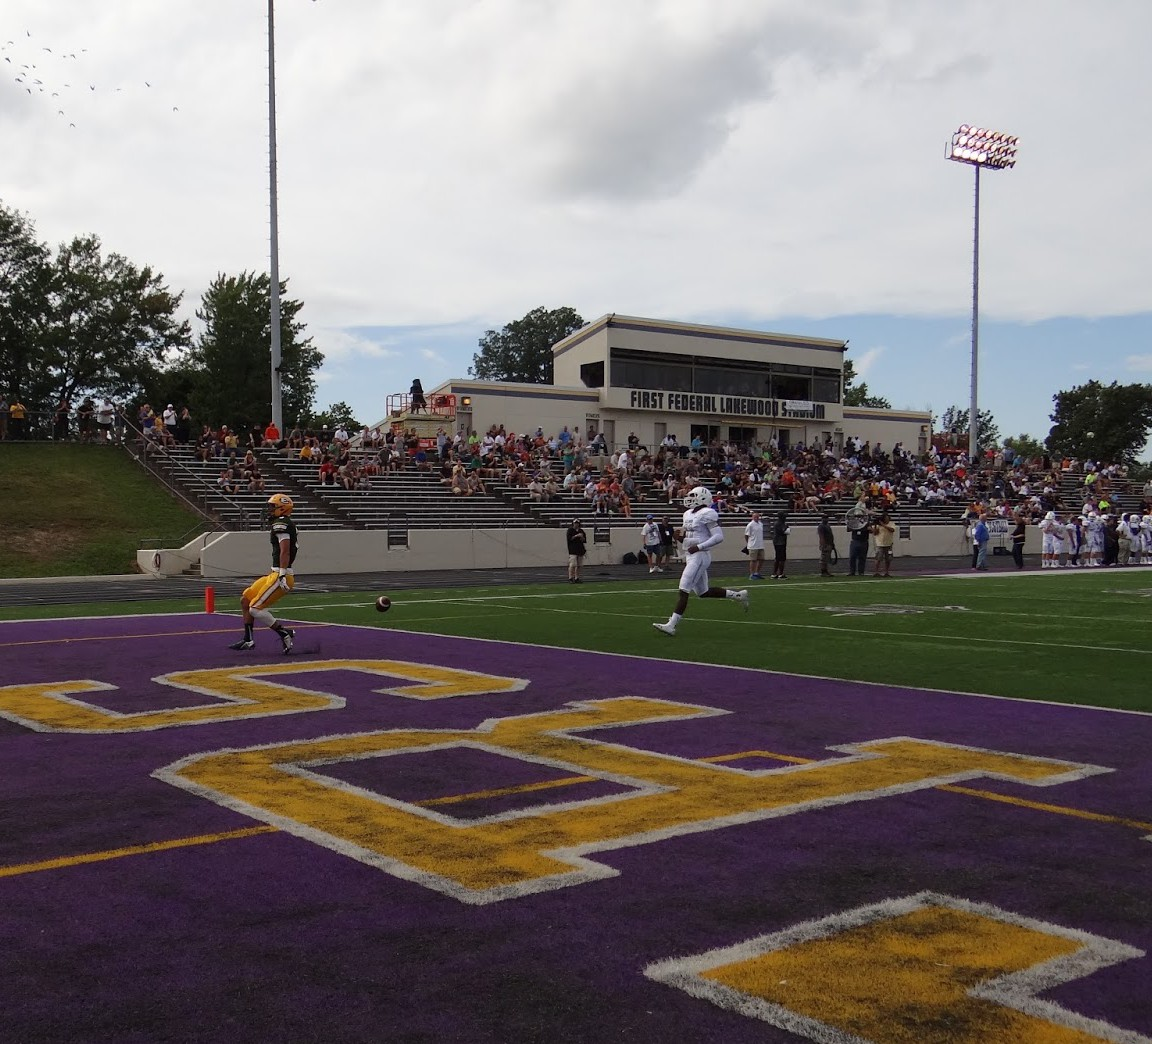 Alex Stump Enters the end zone, scoring our second touchdown of the game